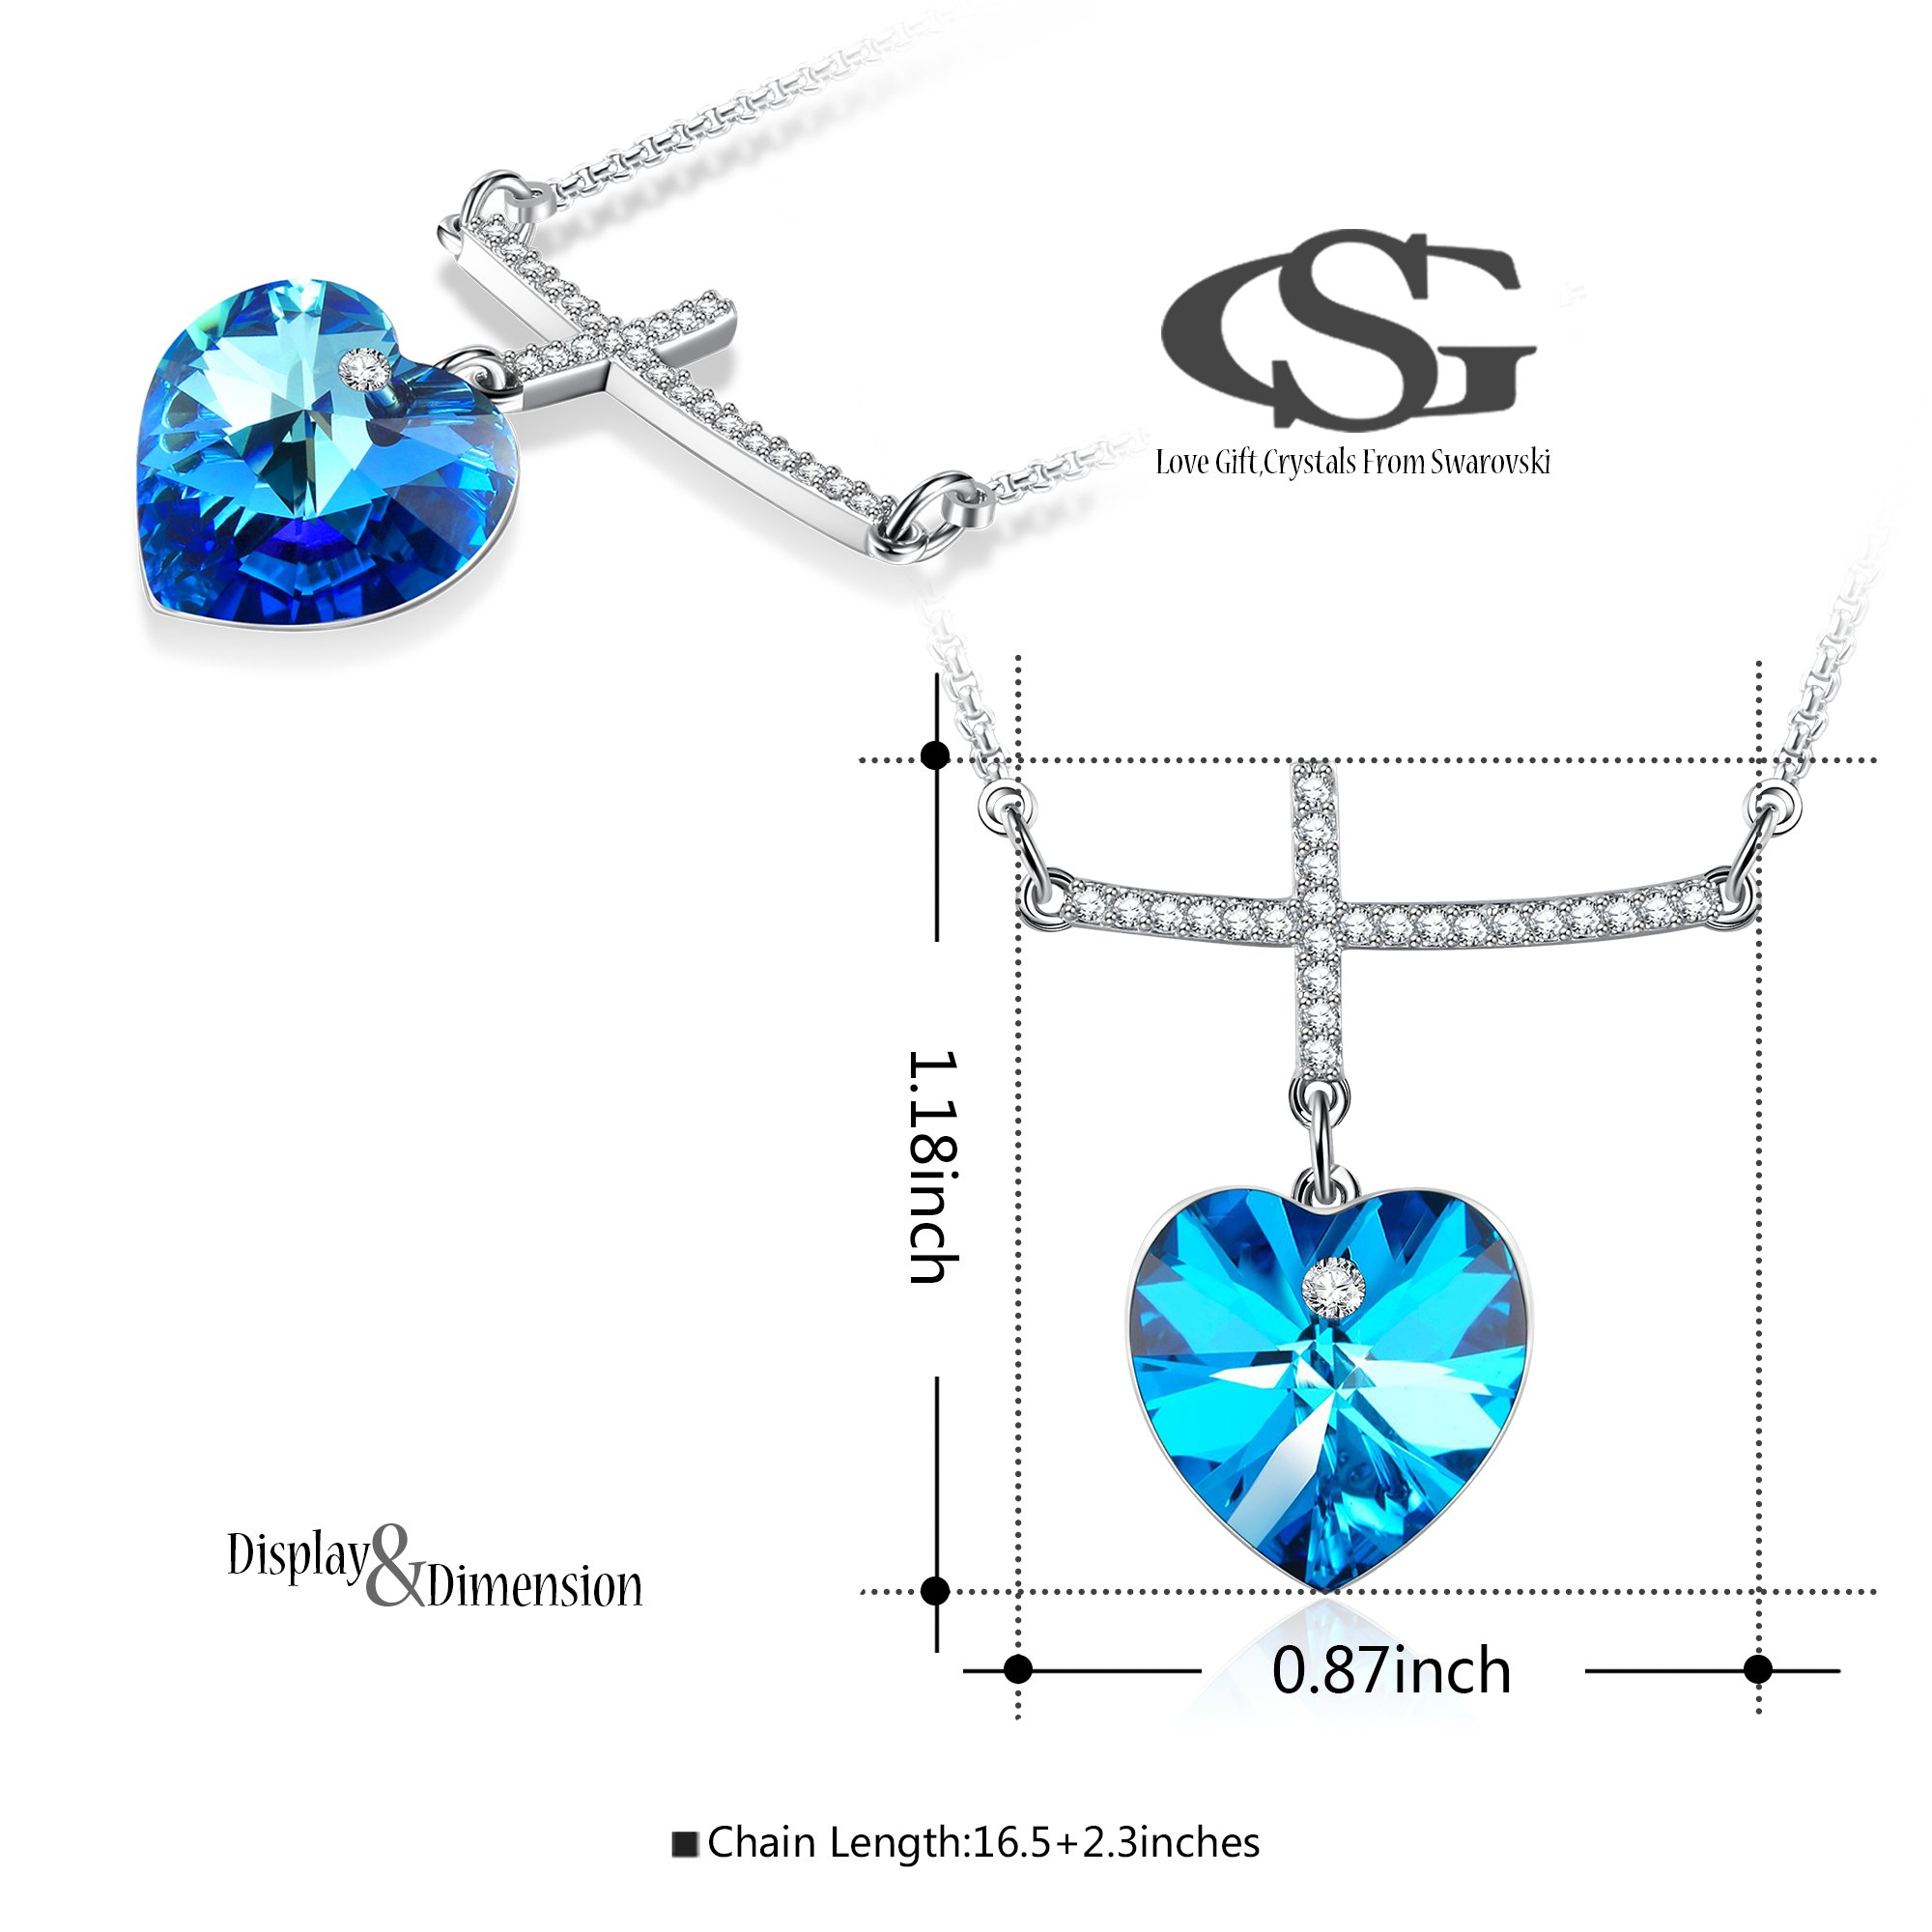 GEORGE SMITH My Prayer Cross Pendant Necklace Diamond necklaces Blue Crystal from Swarovski,Women Jewelry Gifts for her (Blue-2)